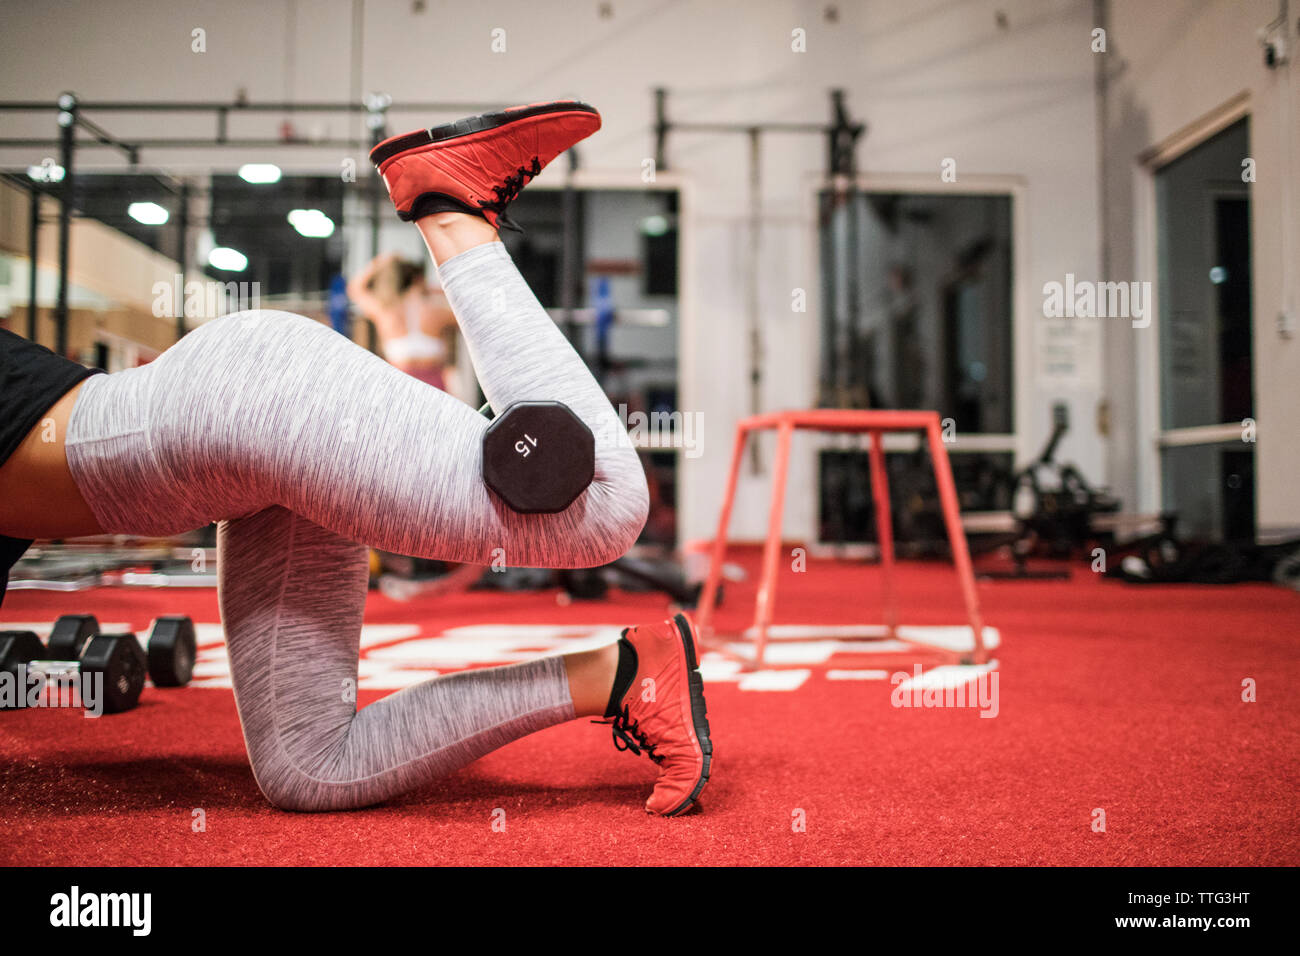 Woman lifts a dumbbell with her leg at the gym. Stock Photo